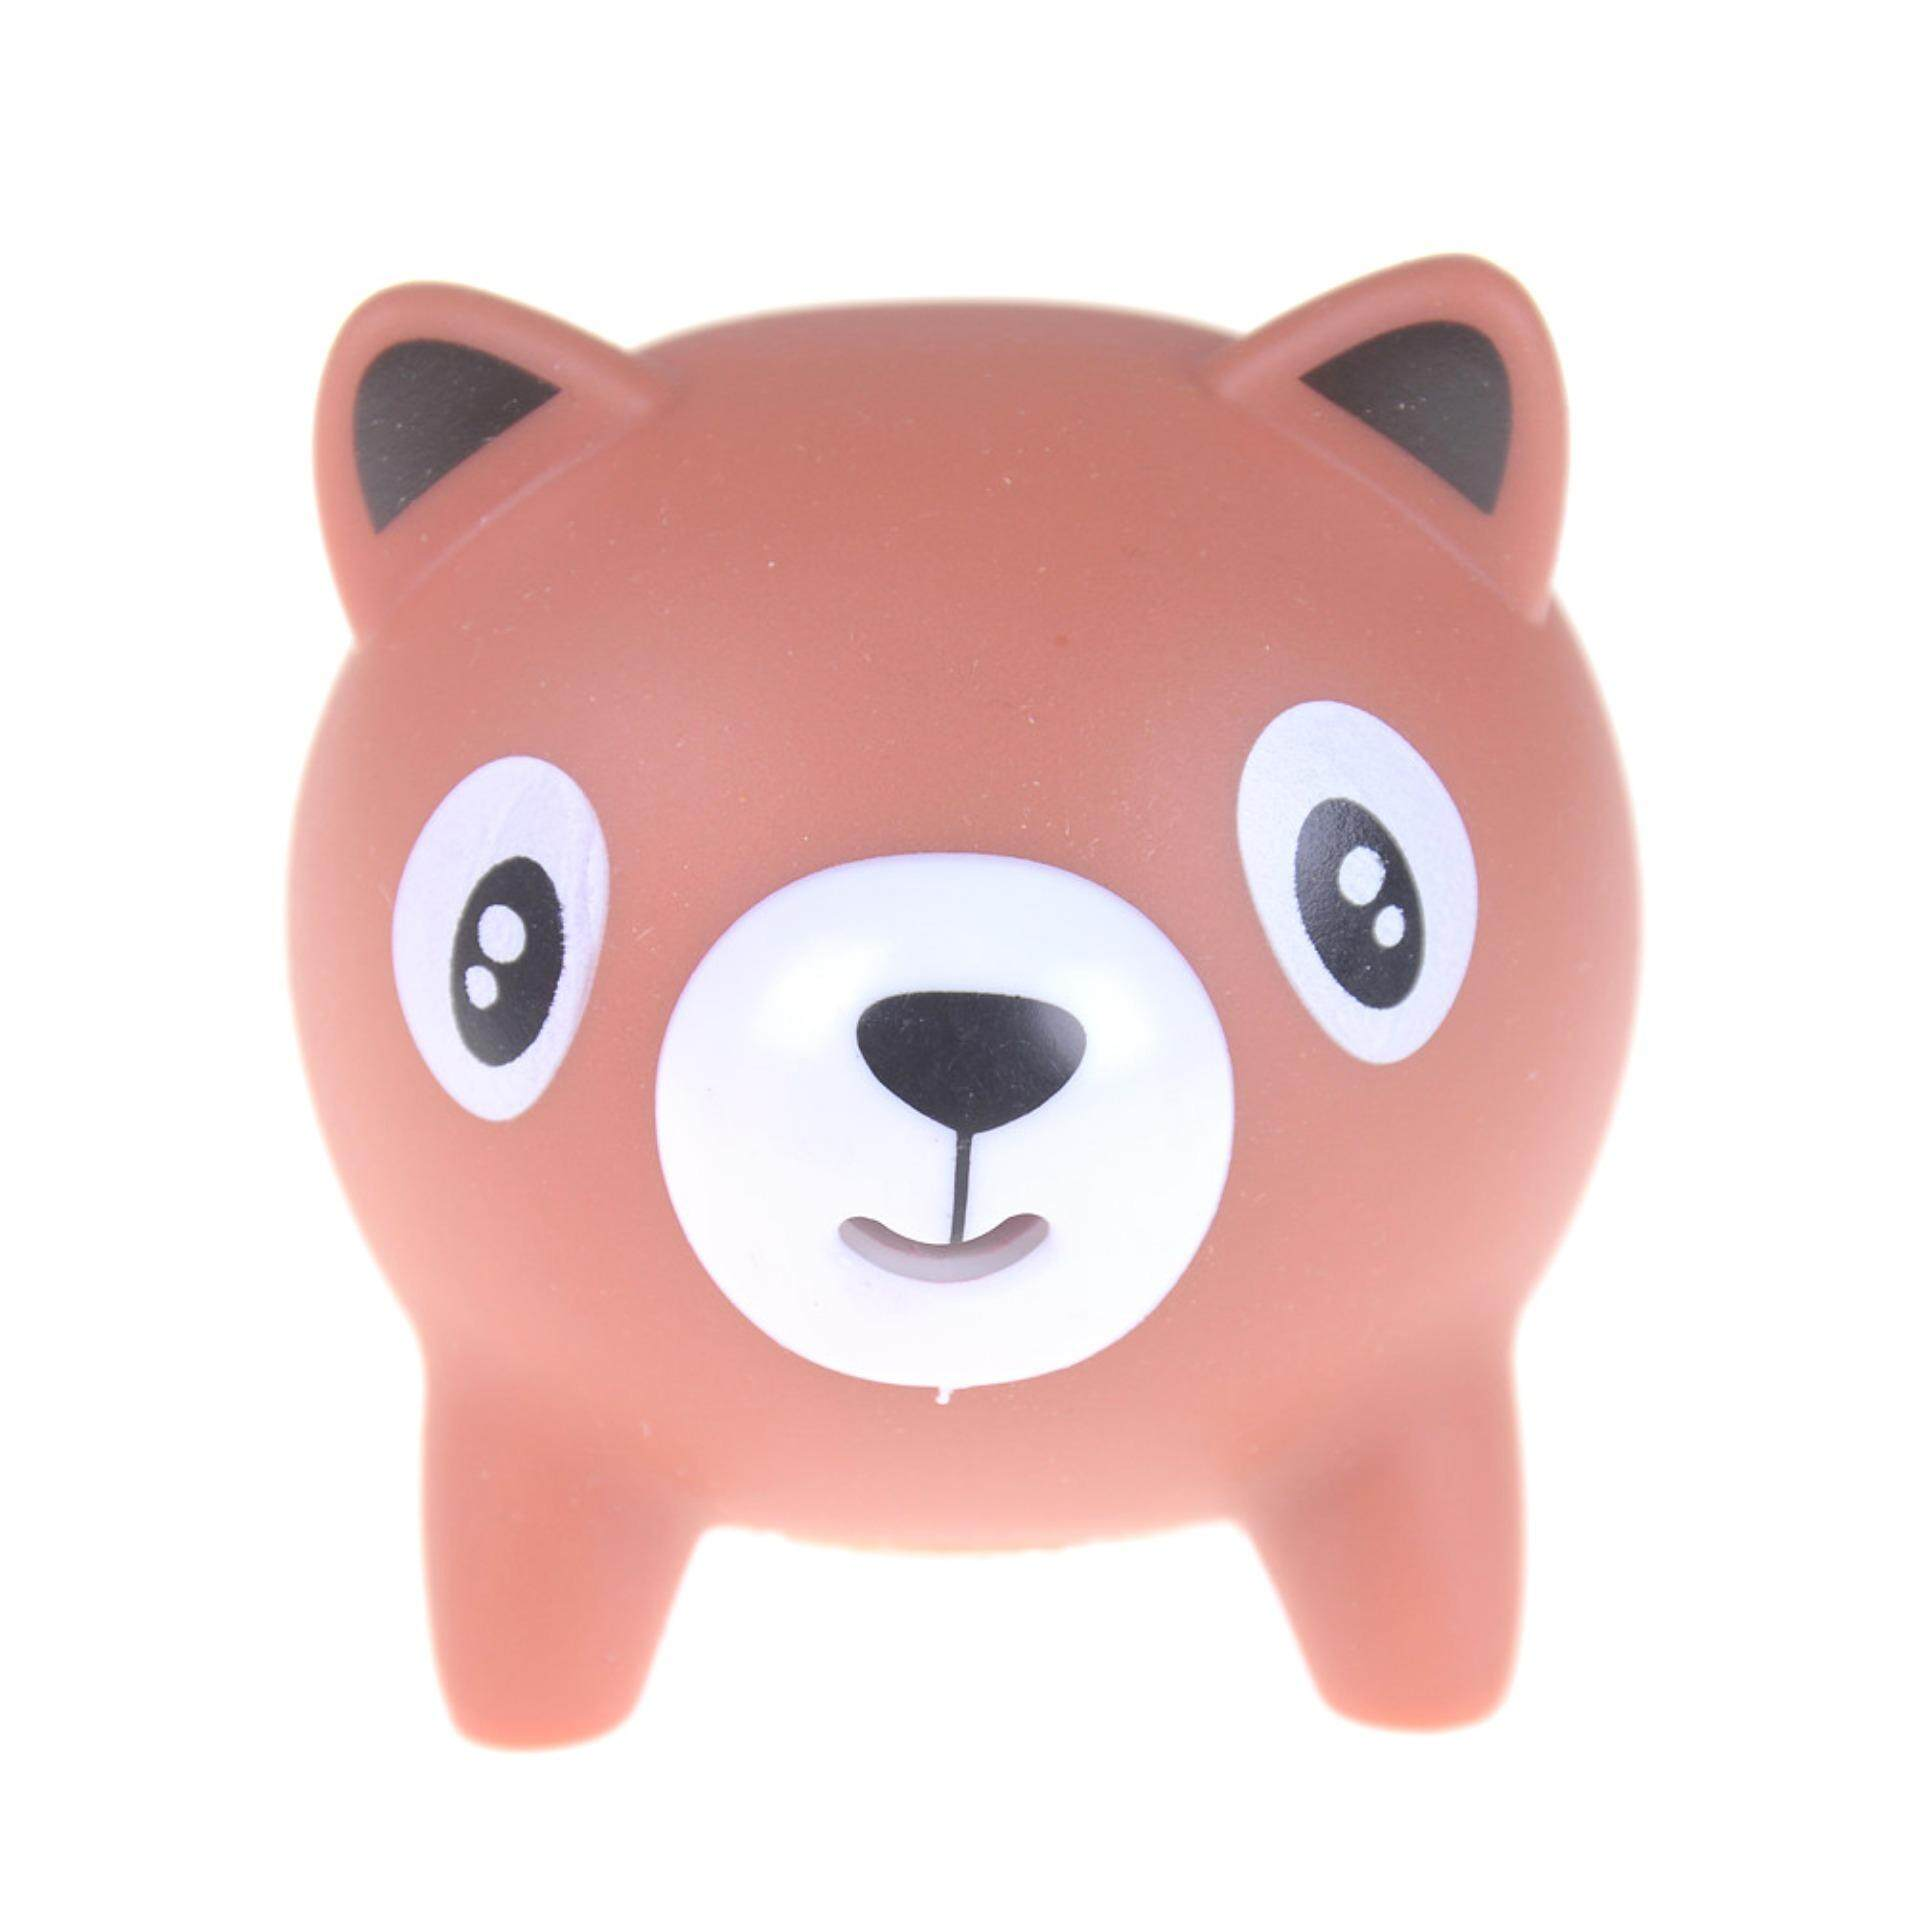 Screams Tongue Doll Toy Tricky Vent Pig Style Doll Toy Birthday Gift For Kid